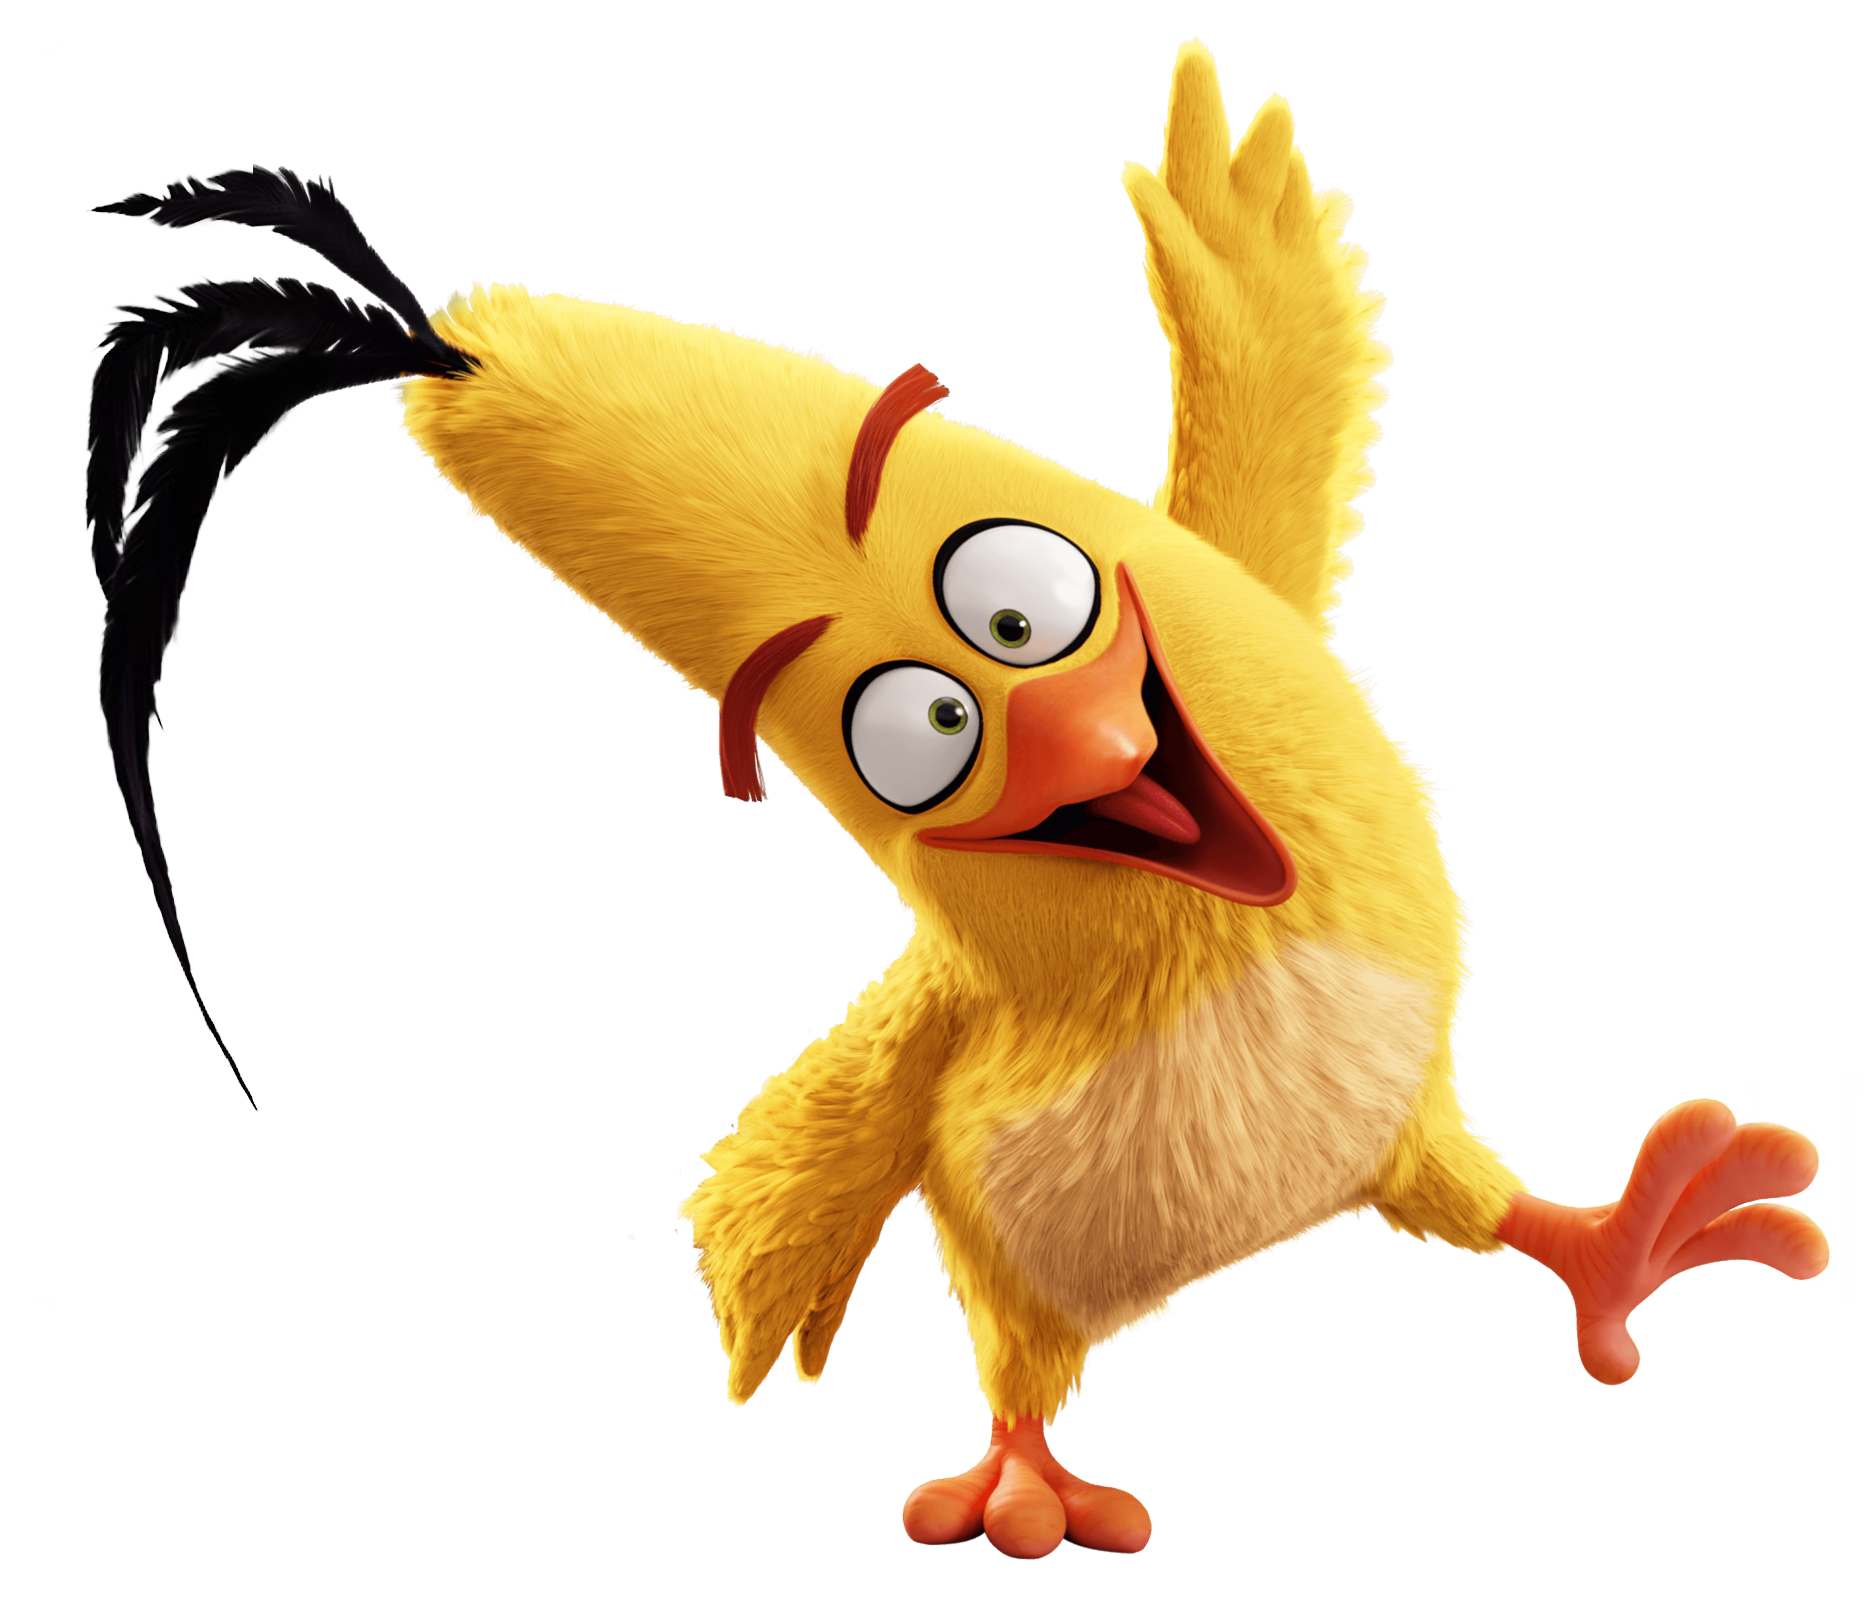 Angry birds movie png. The chuck transparent image